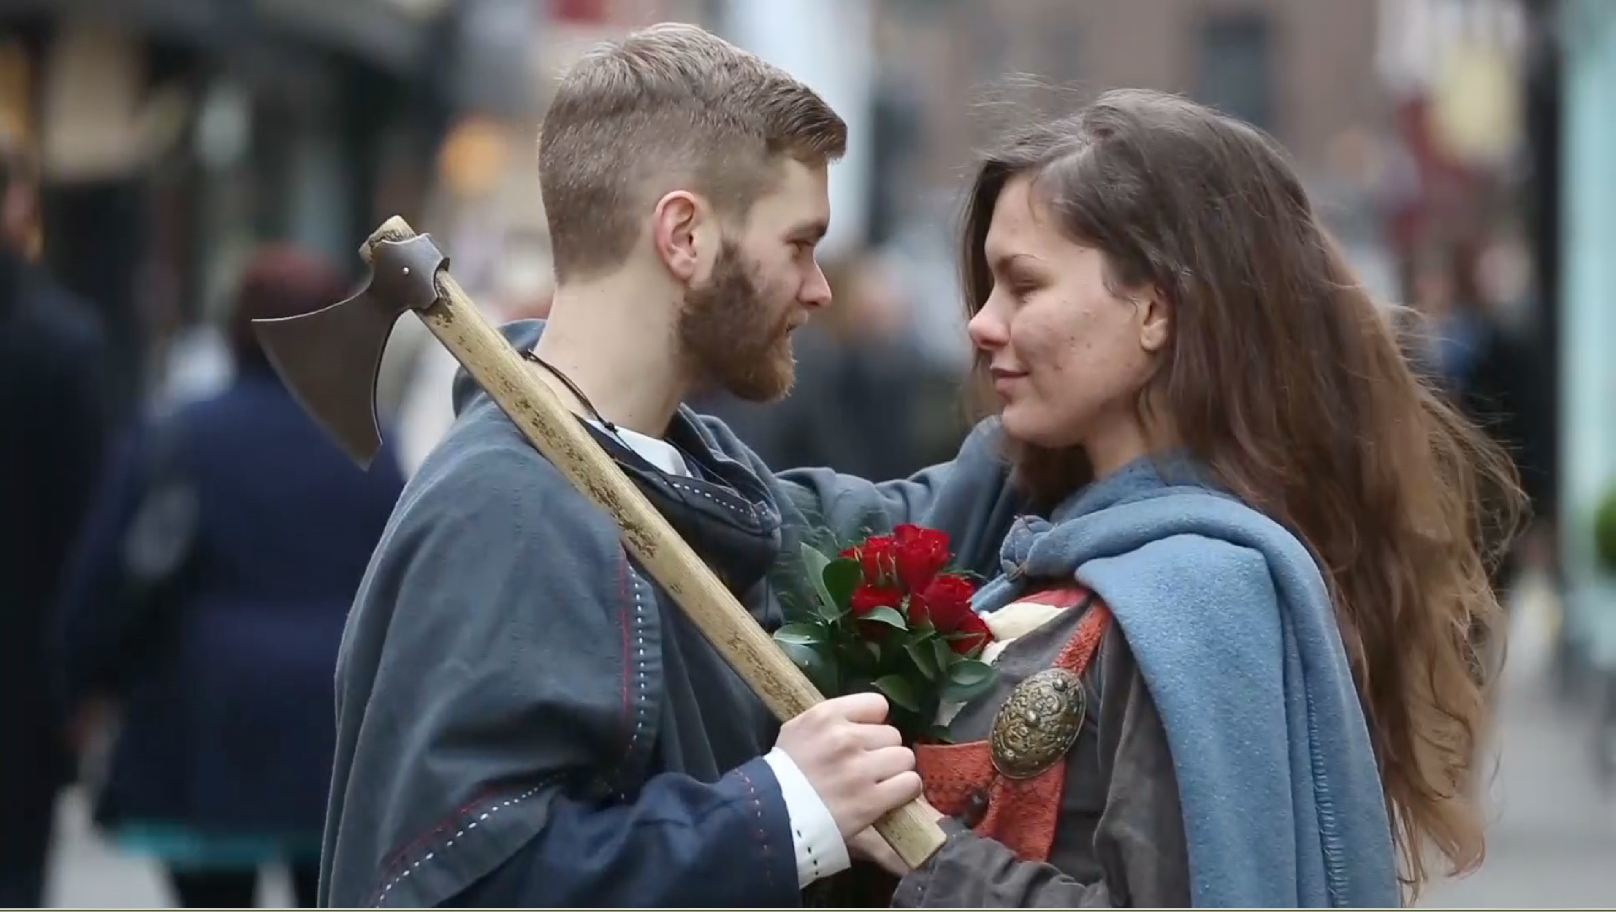 Vikings were the original 'Metrosexuals' according to historical sources